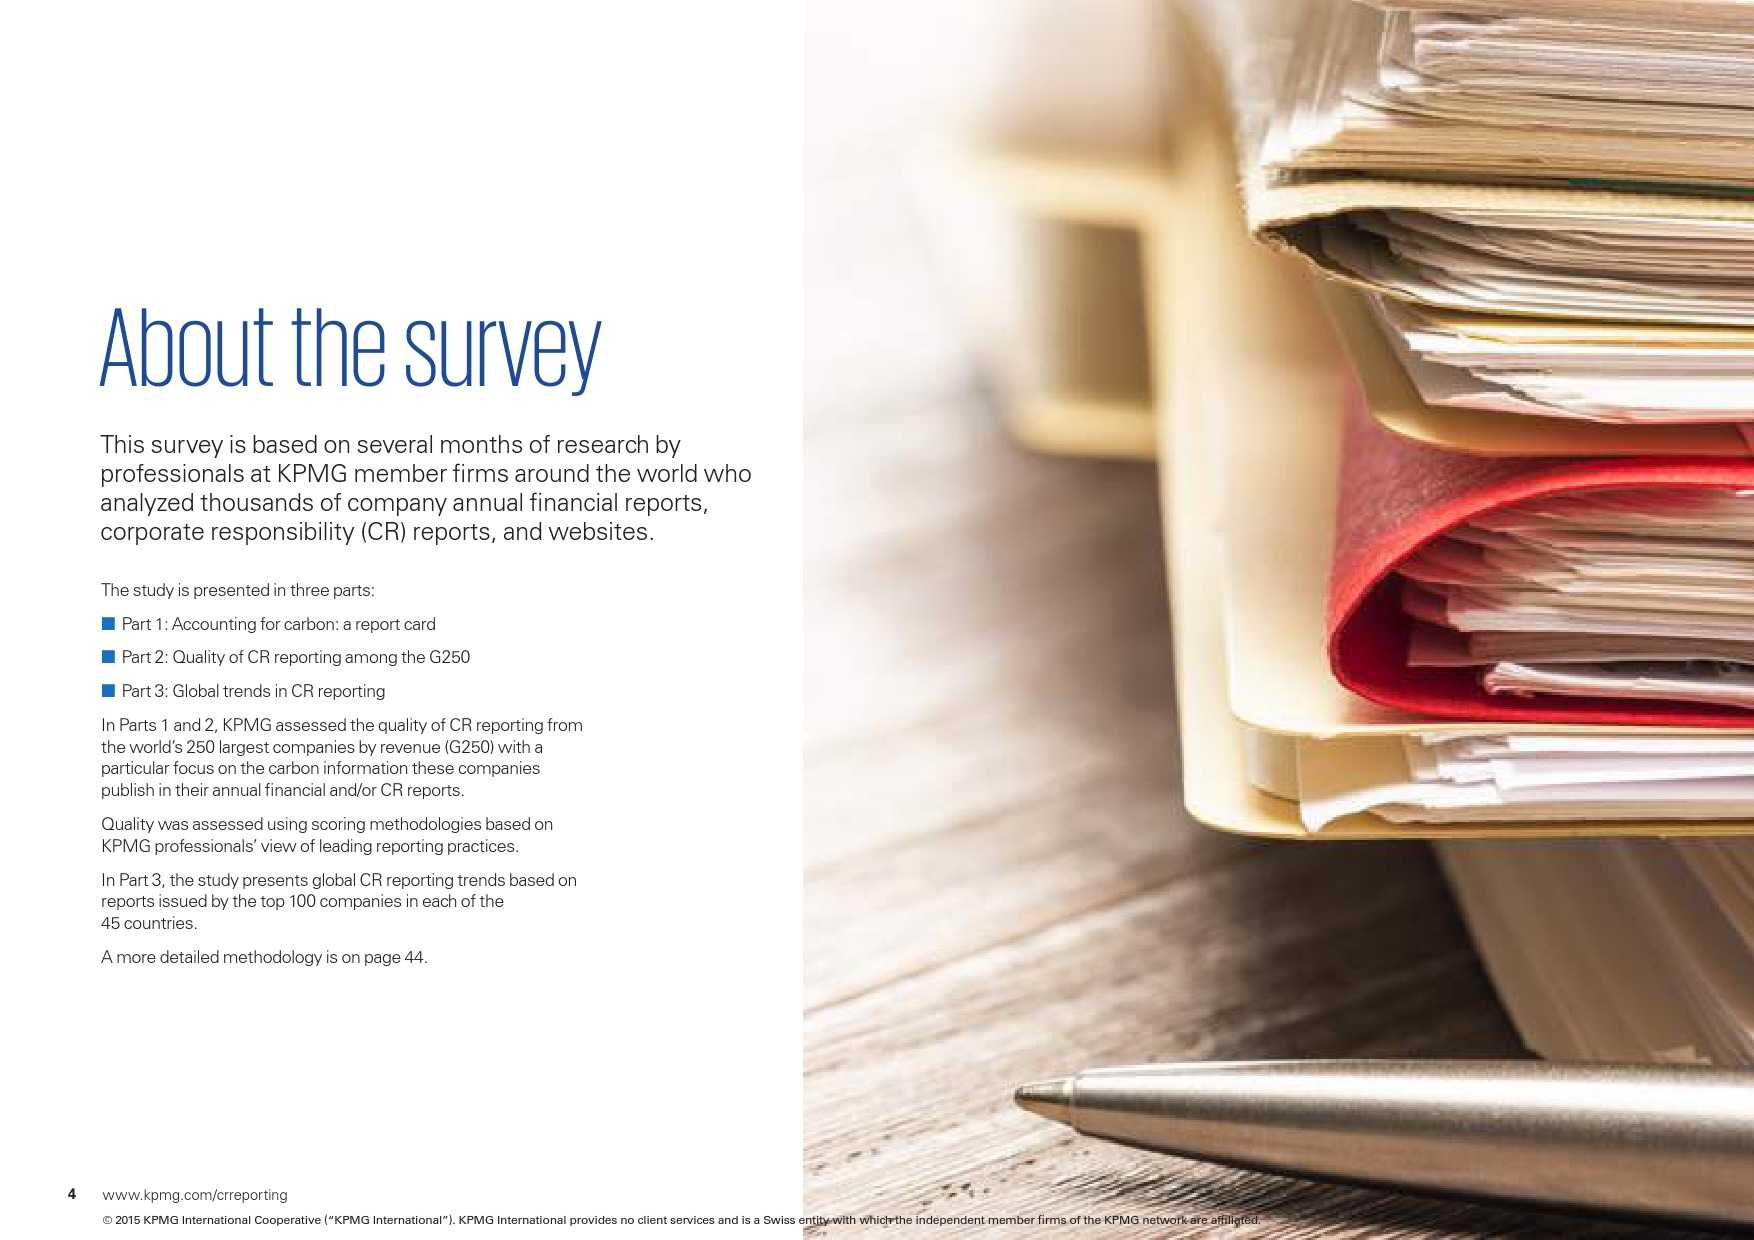 kpmg-international-survey-of-corporate-responsibility-reporting-2015_000004